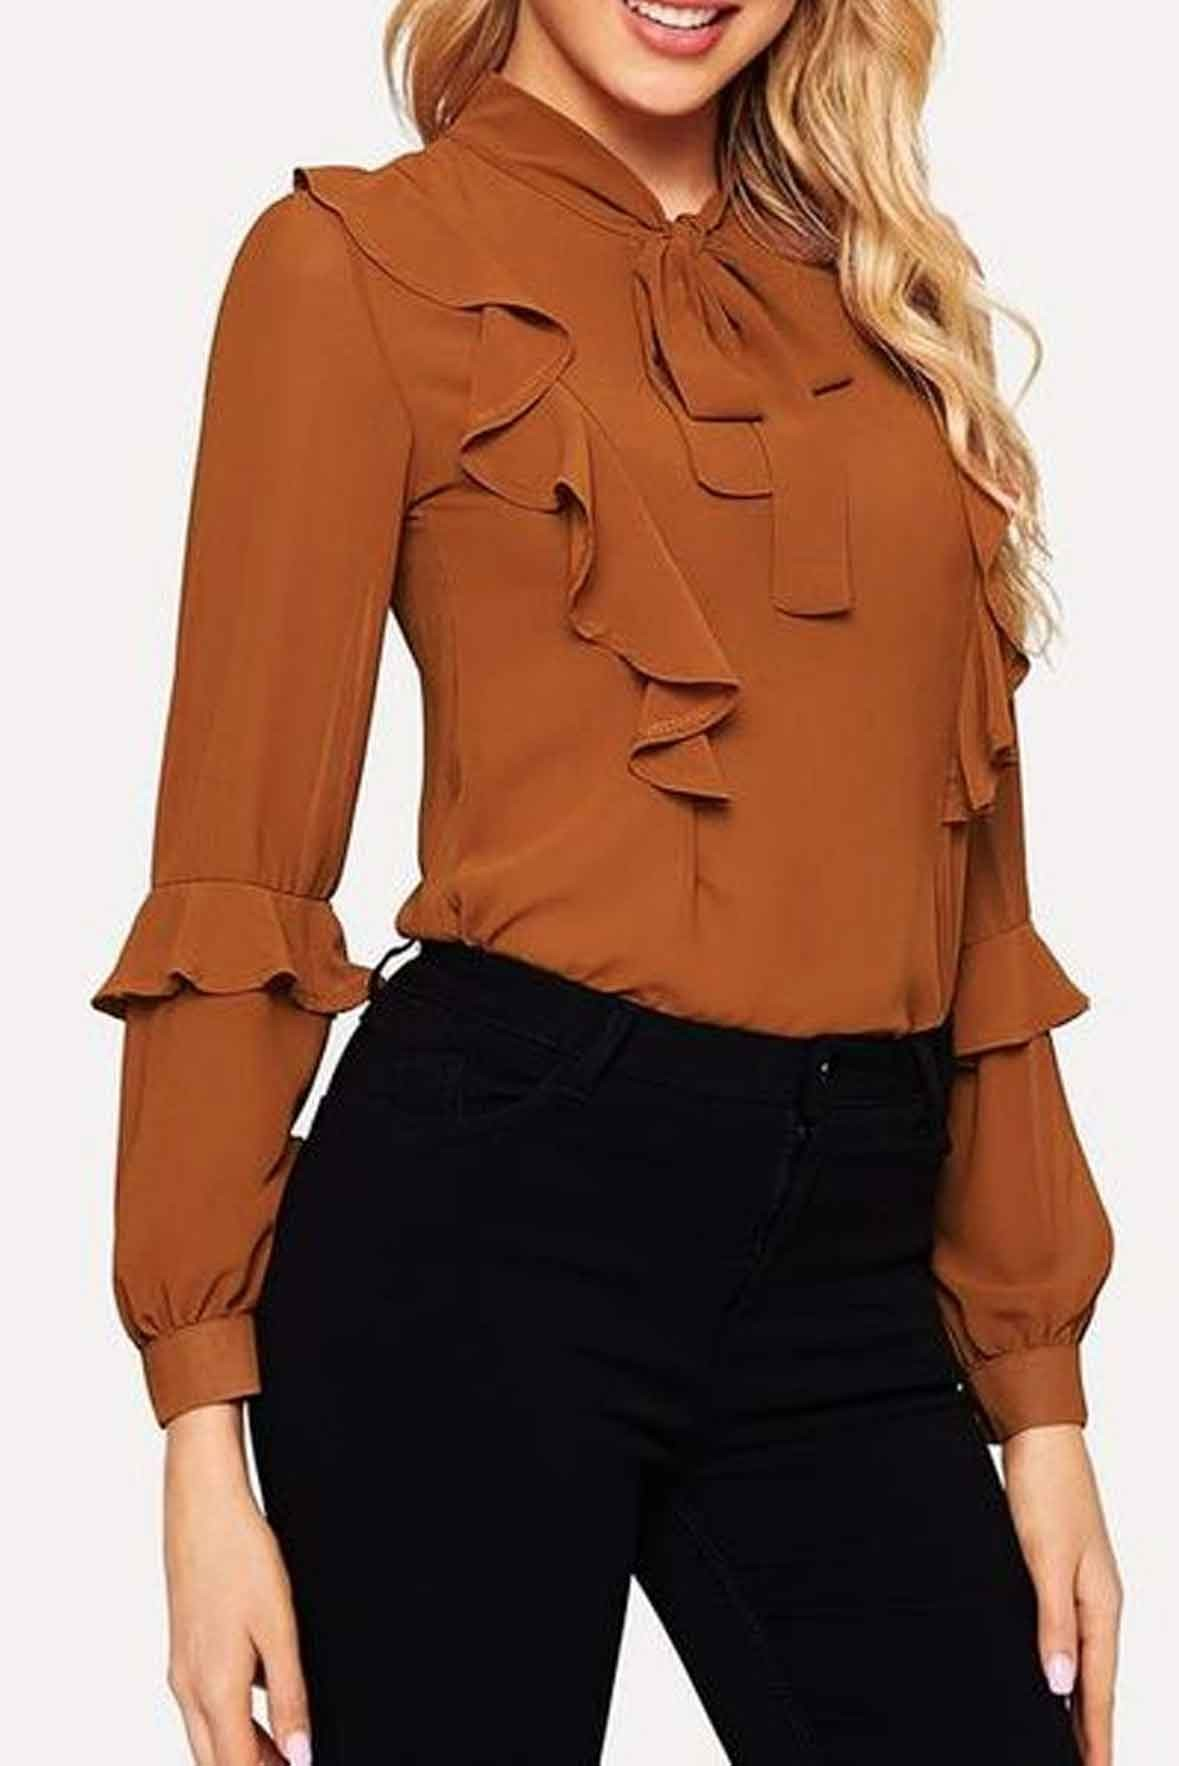 Holiday Groove Top